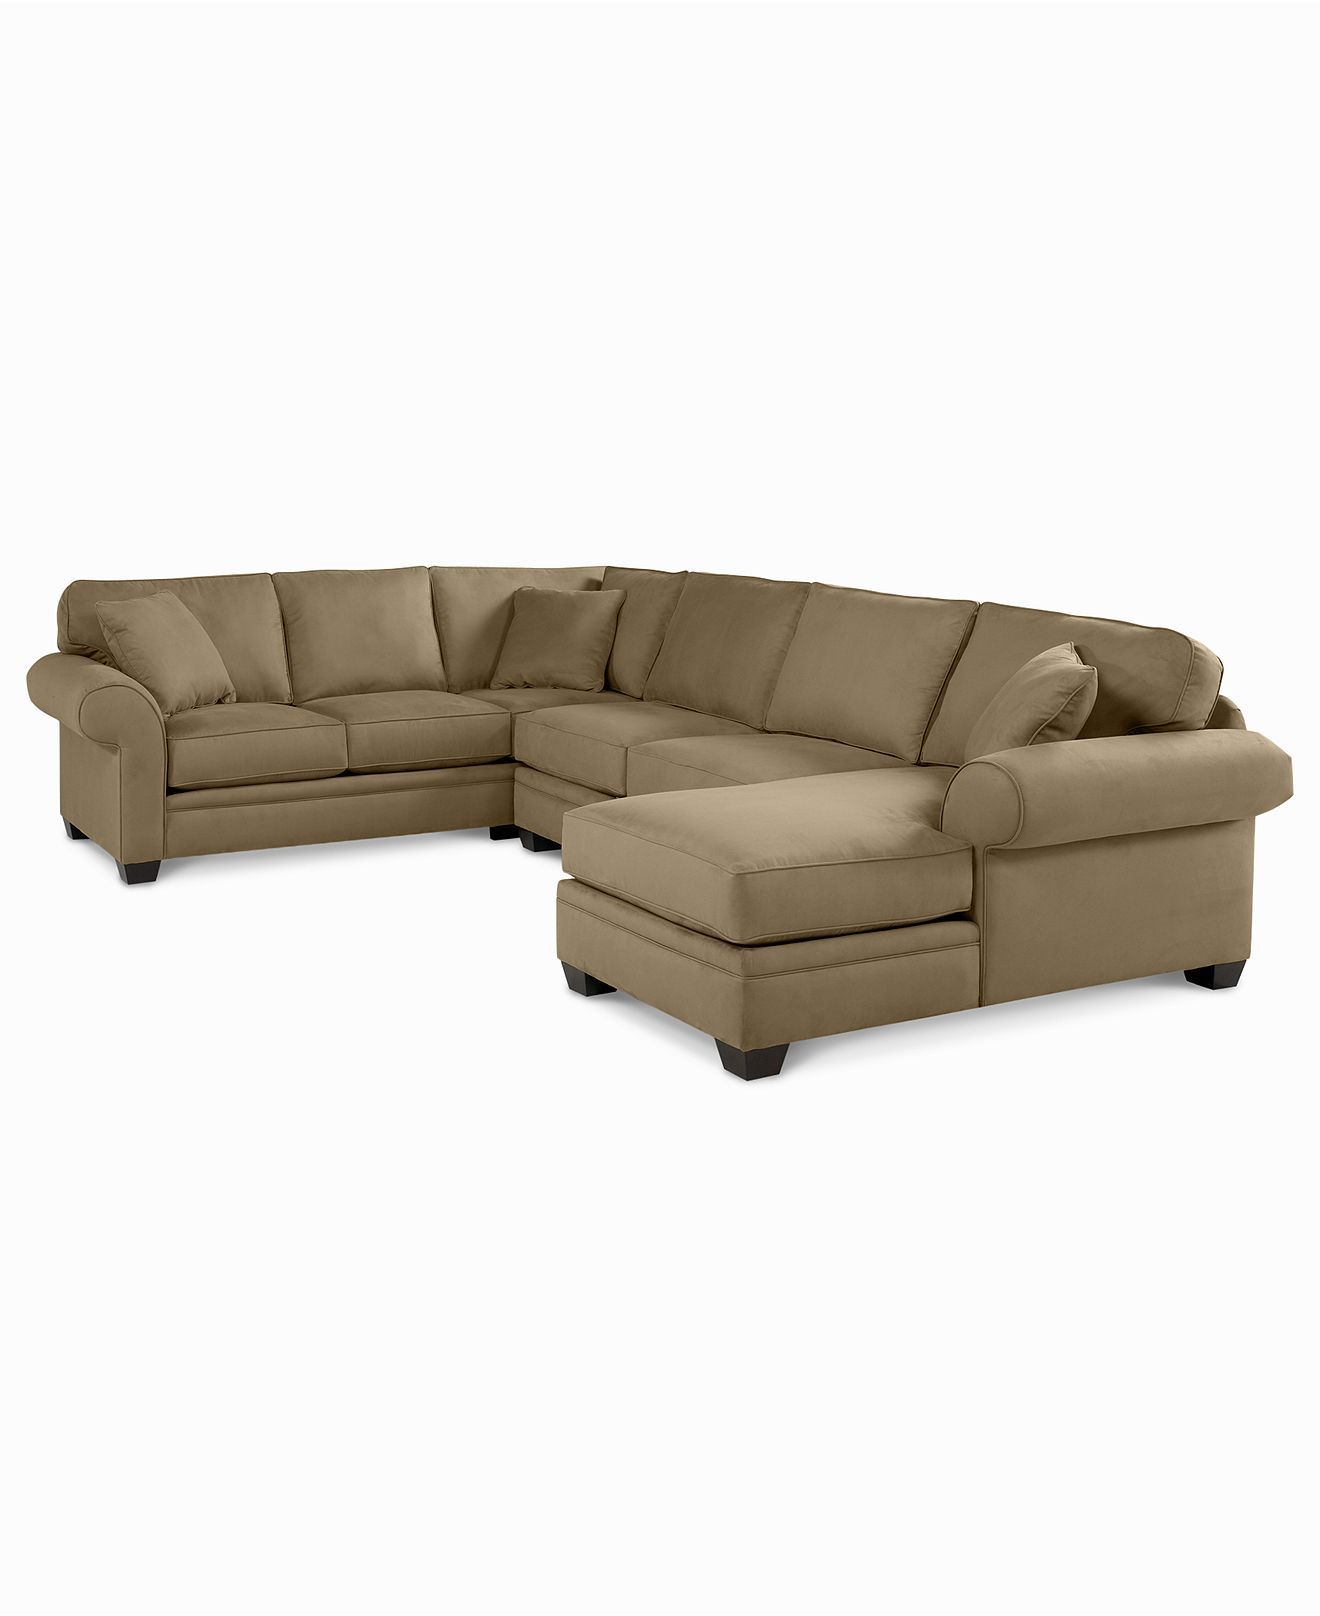 3 piece microfiber sectional sofa with chaise rattan slipcovers raja fabric right arm